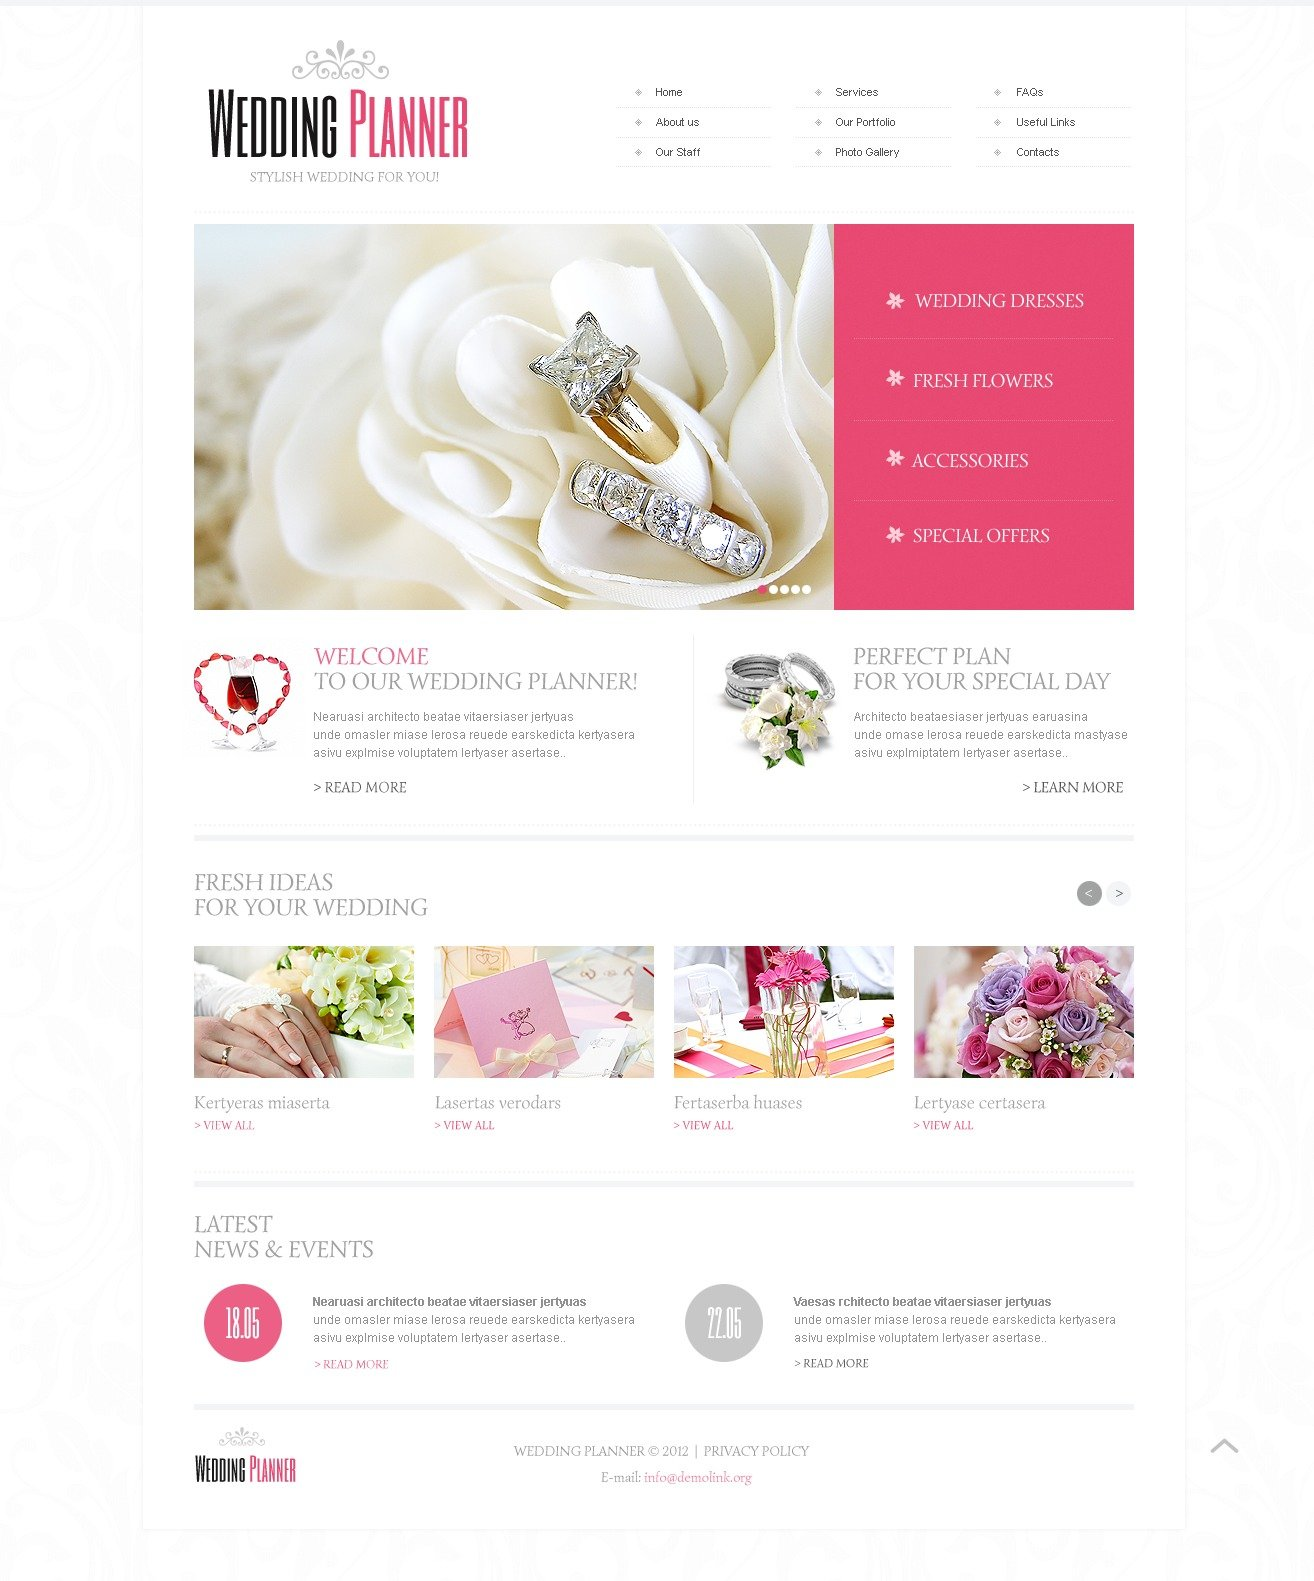 free wedding planner templates - wedding planner website template 40649